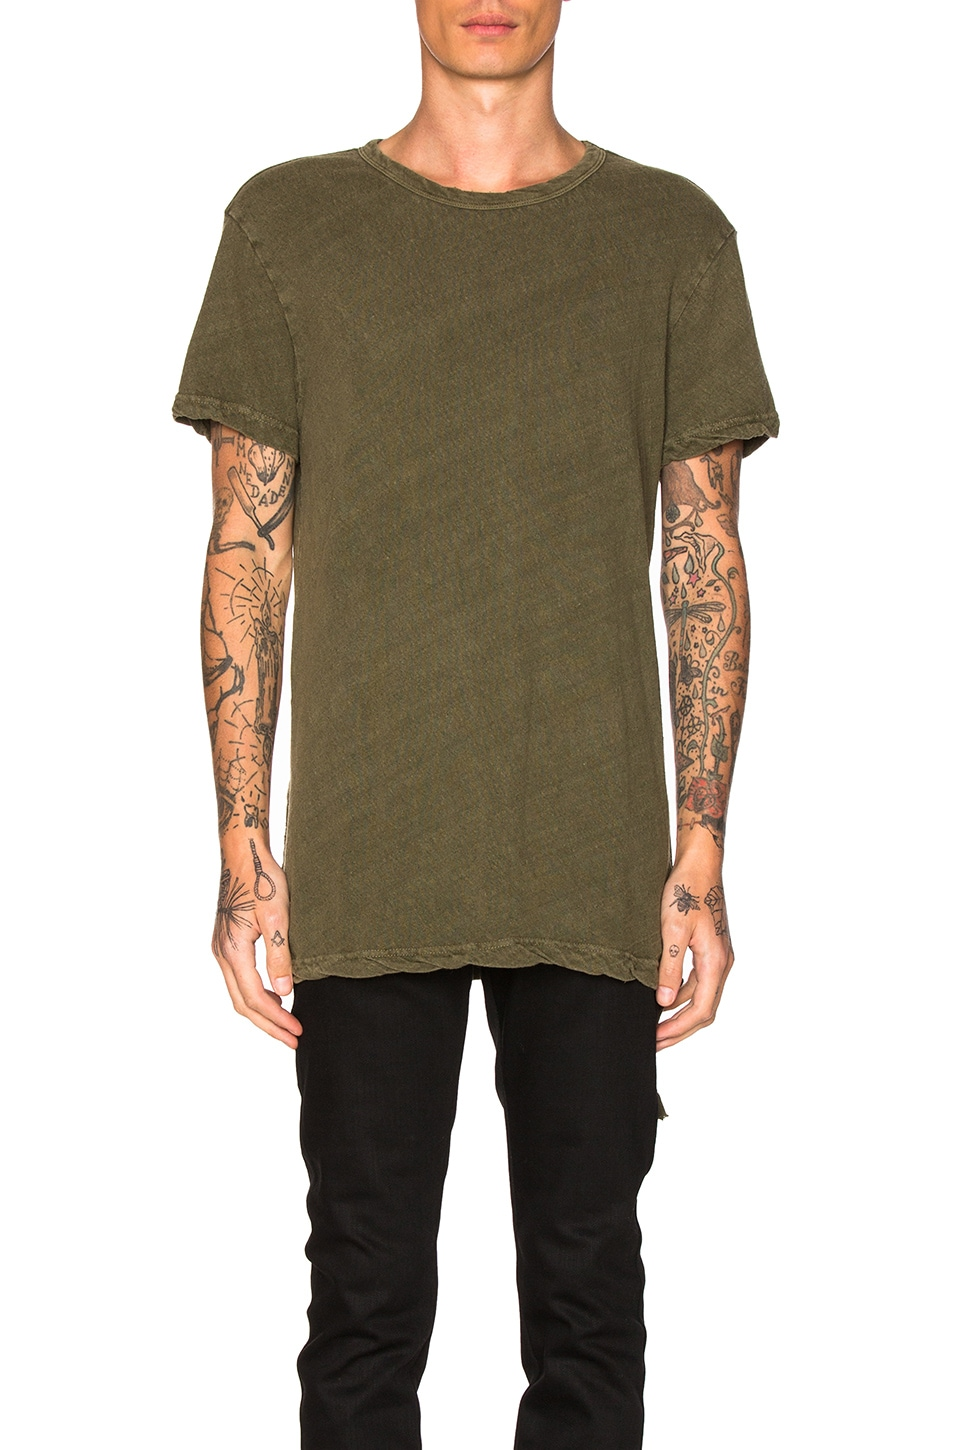 Loose Morals Tee by Ksubi